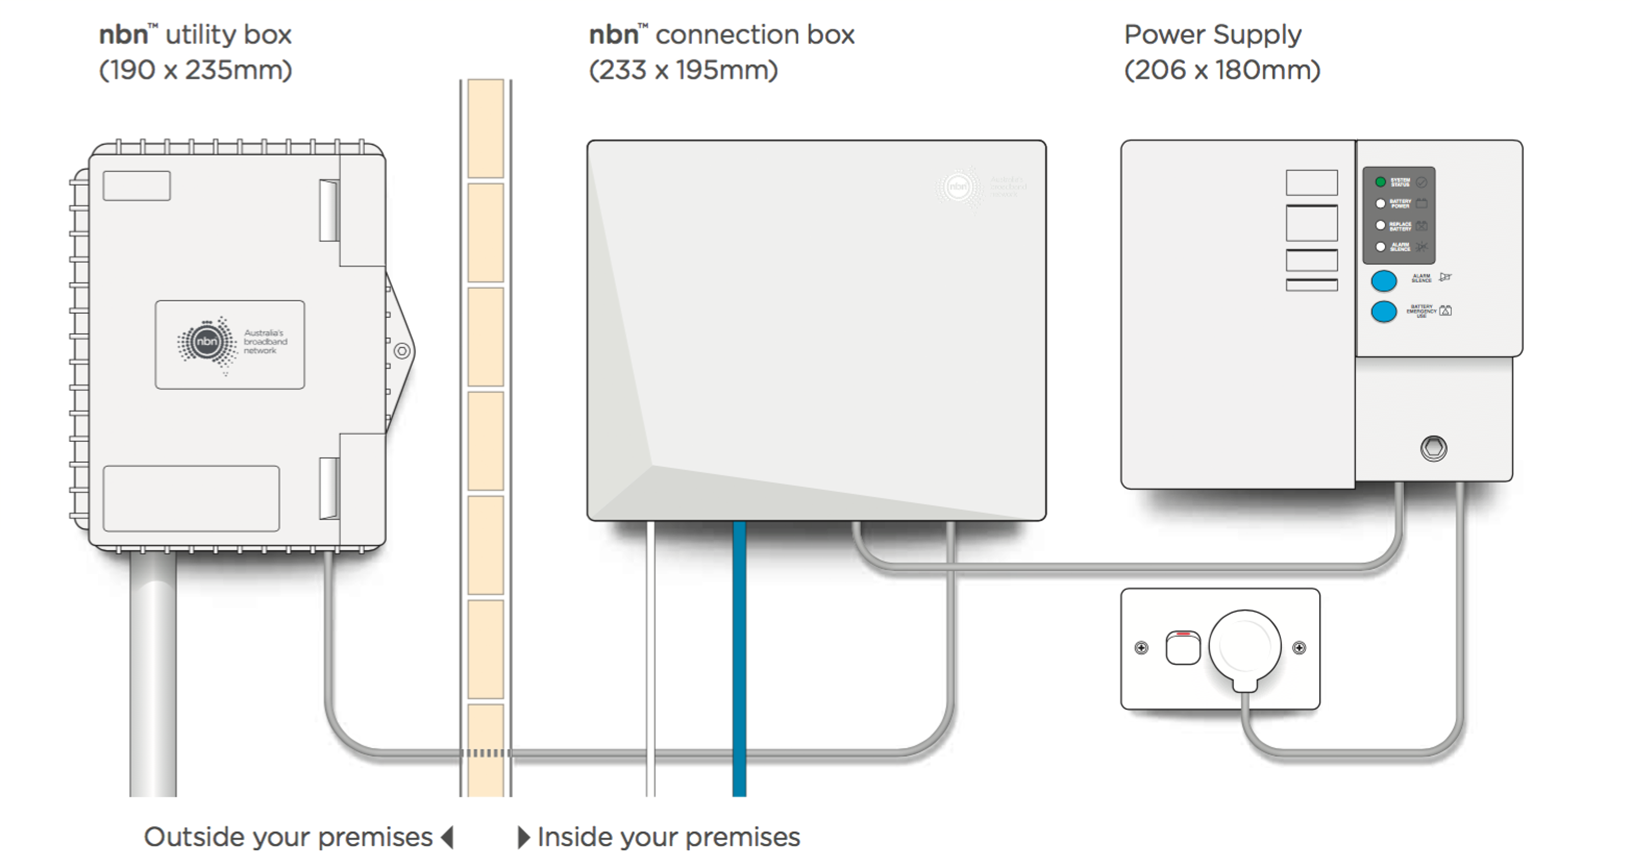 How Do I Change My Internet Login On Netcomm Wireless Modem Wiring Diagram Most Nbn Fibre Connections Will Have A New Optic Cable Run Right Up To The Premisesif You An Connection Box In Your Home Are Using